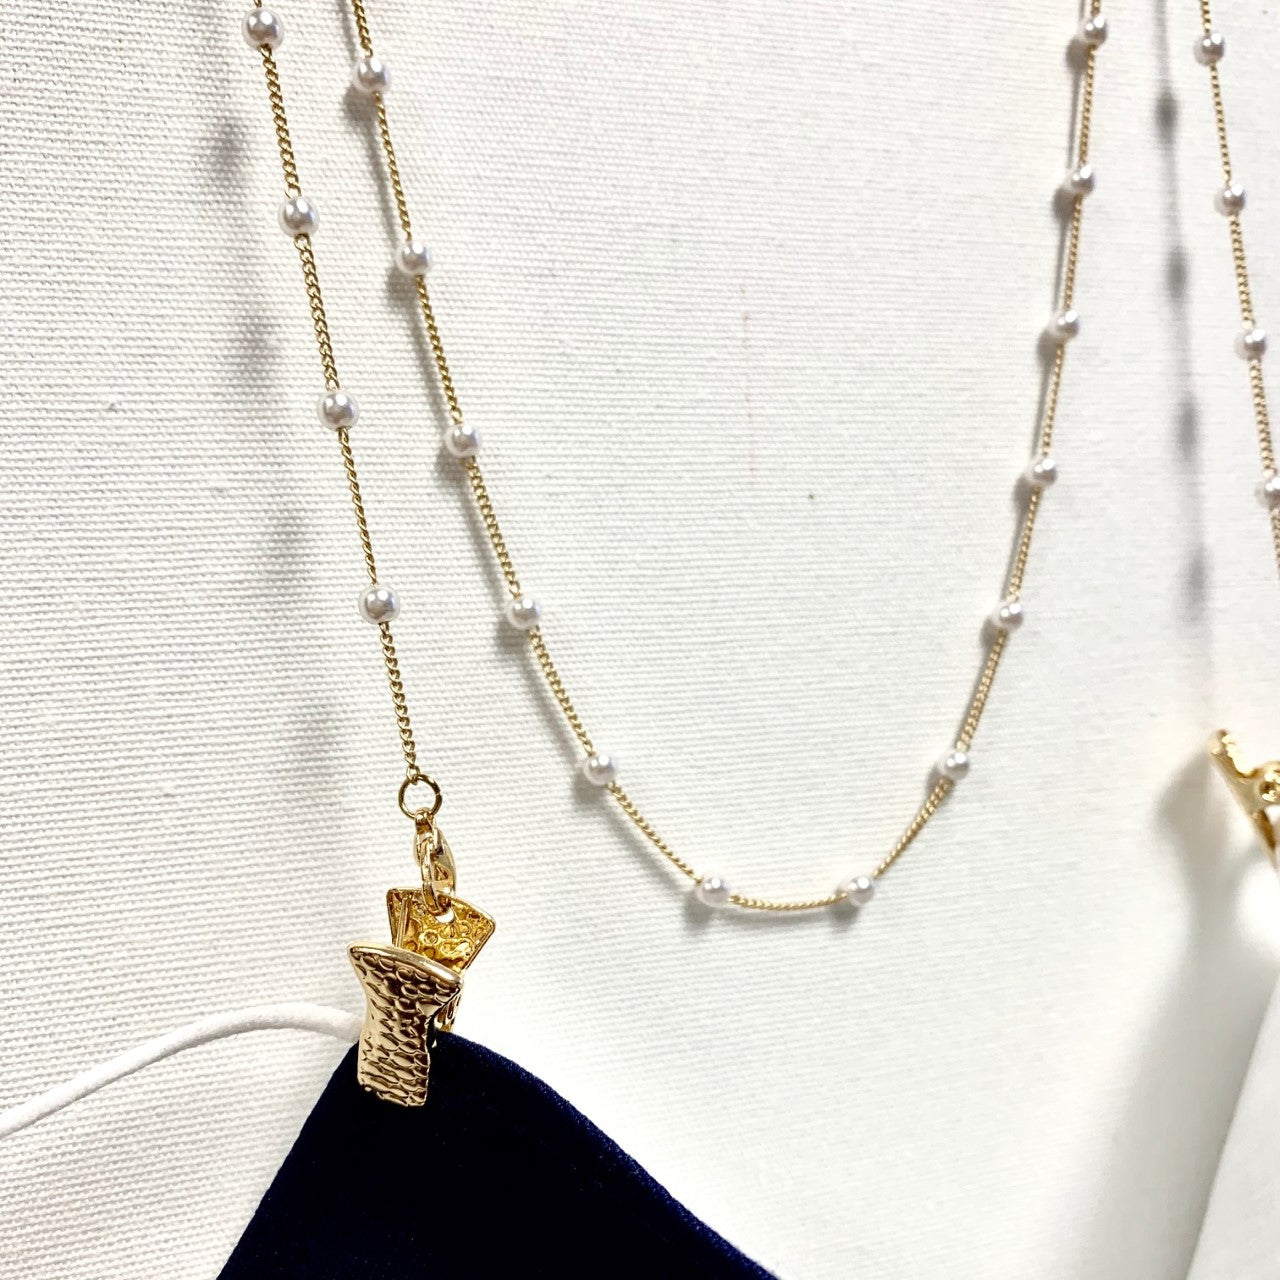 GOLD CHAIN WITH PEARL MASK CHAIN